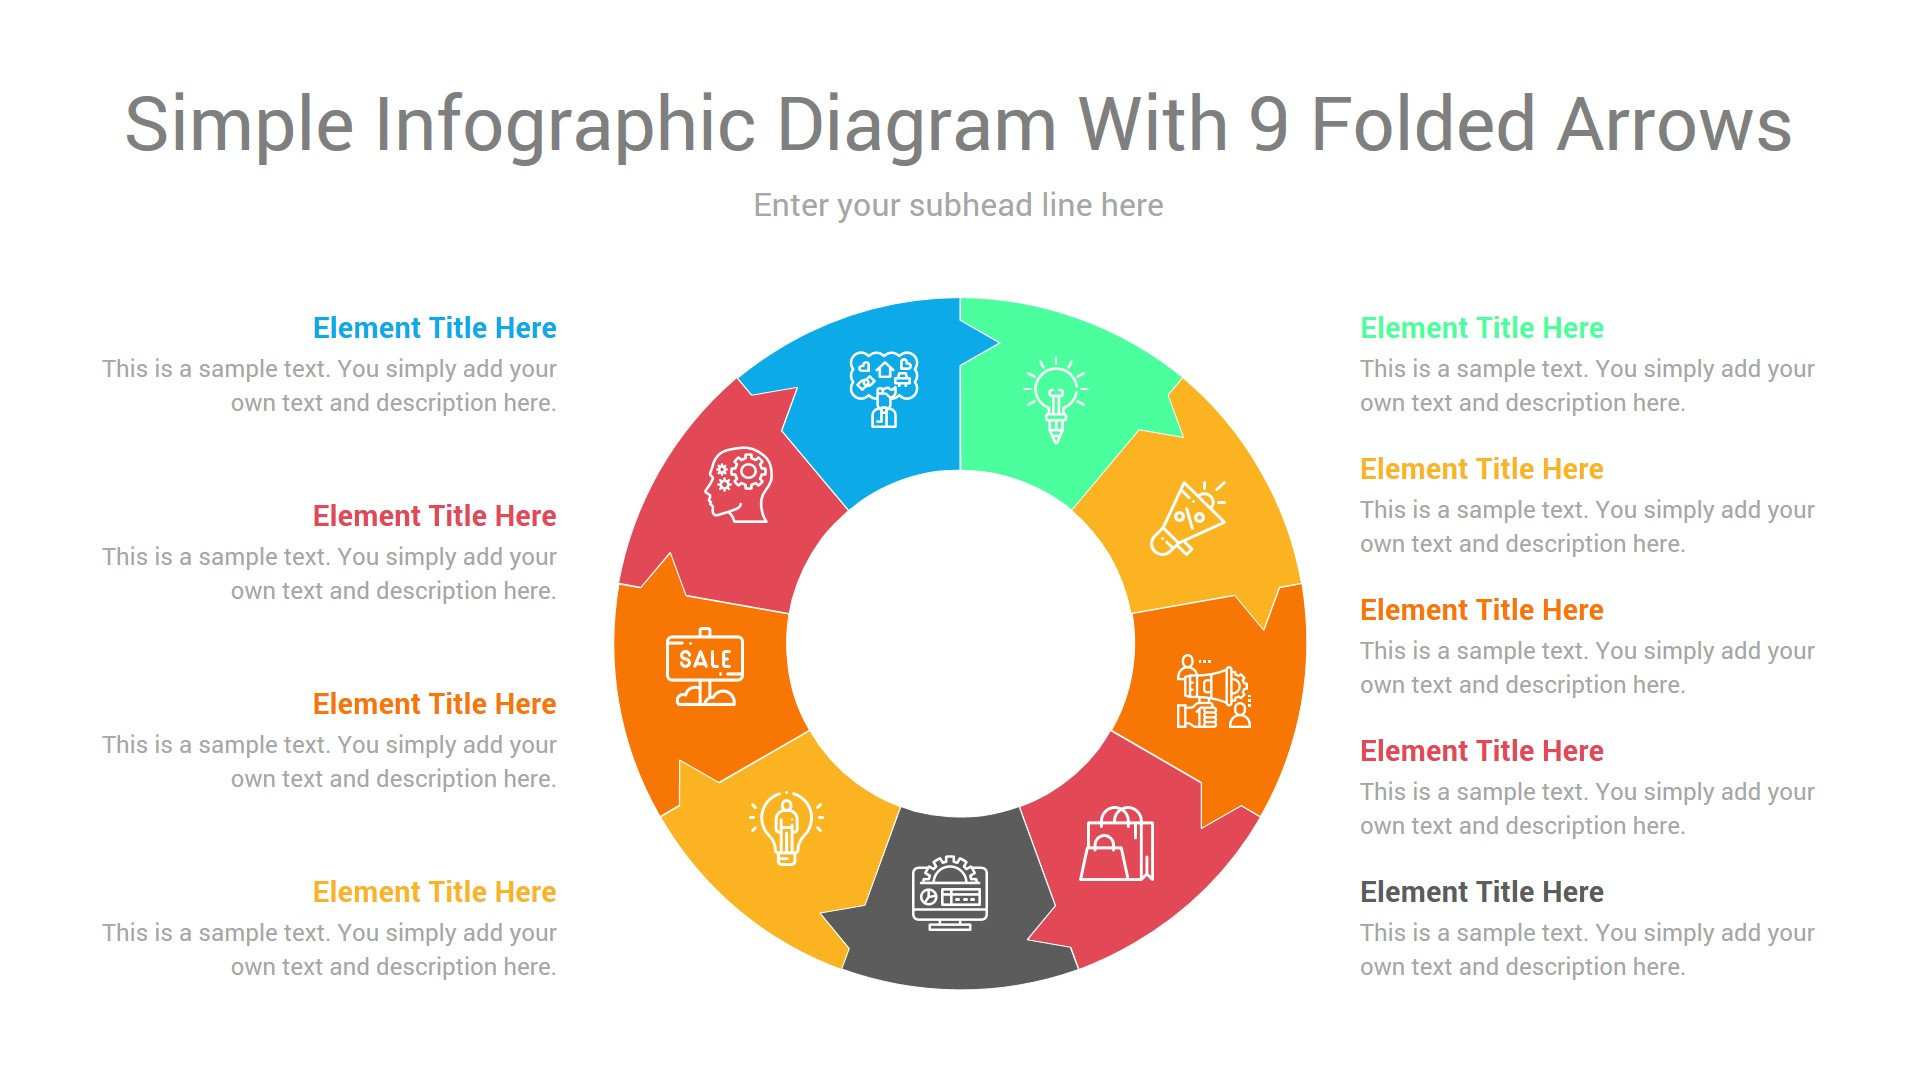 Simple infographic diagram with 9 folded arrows